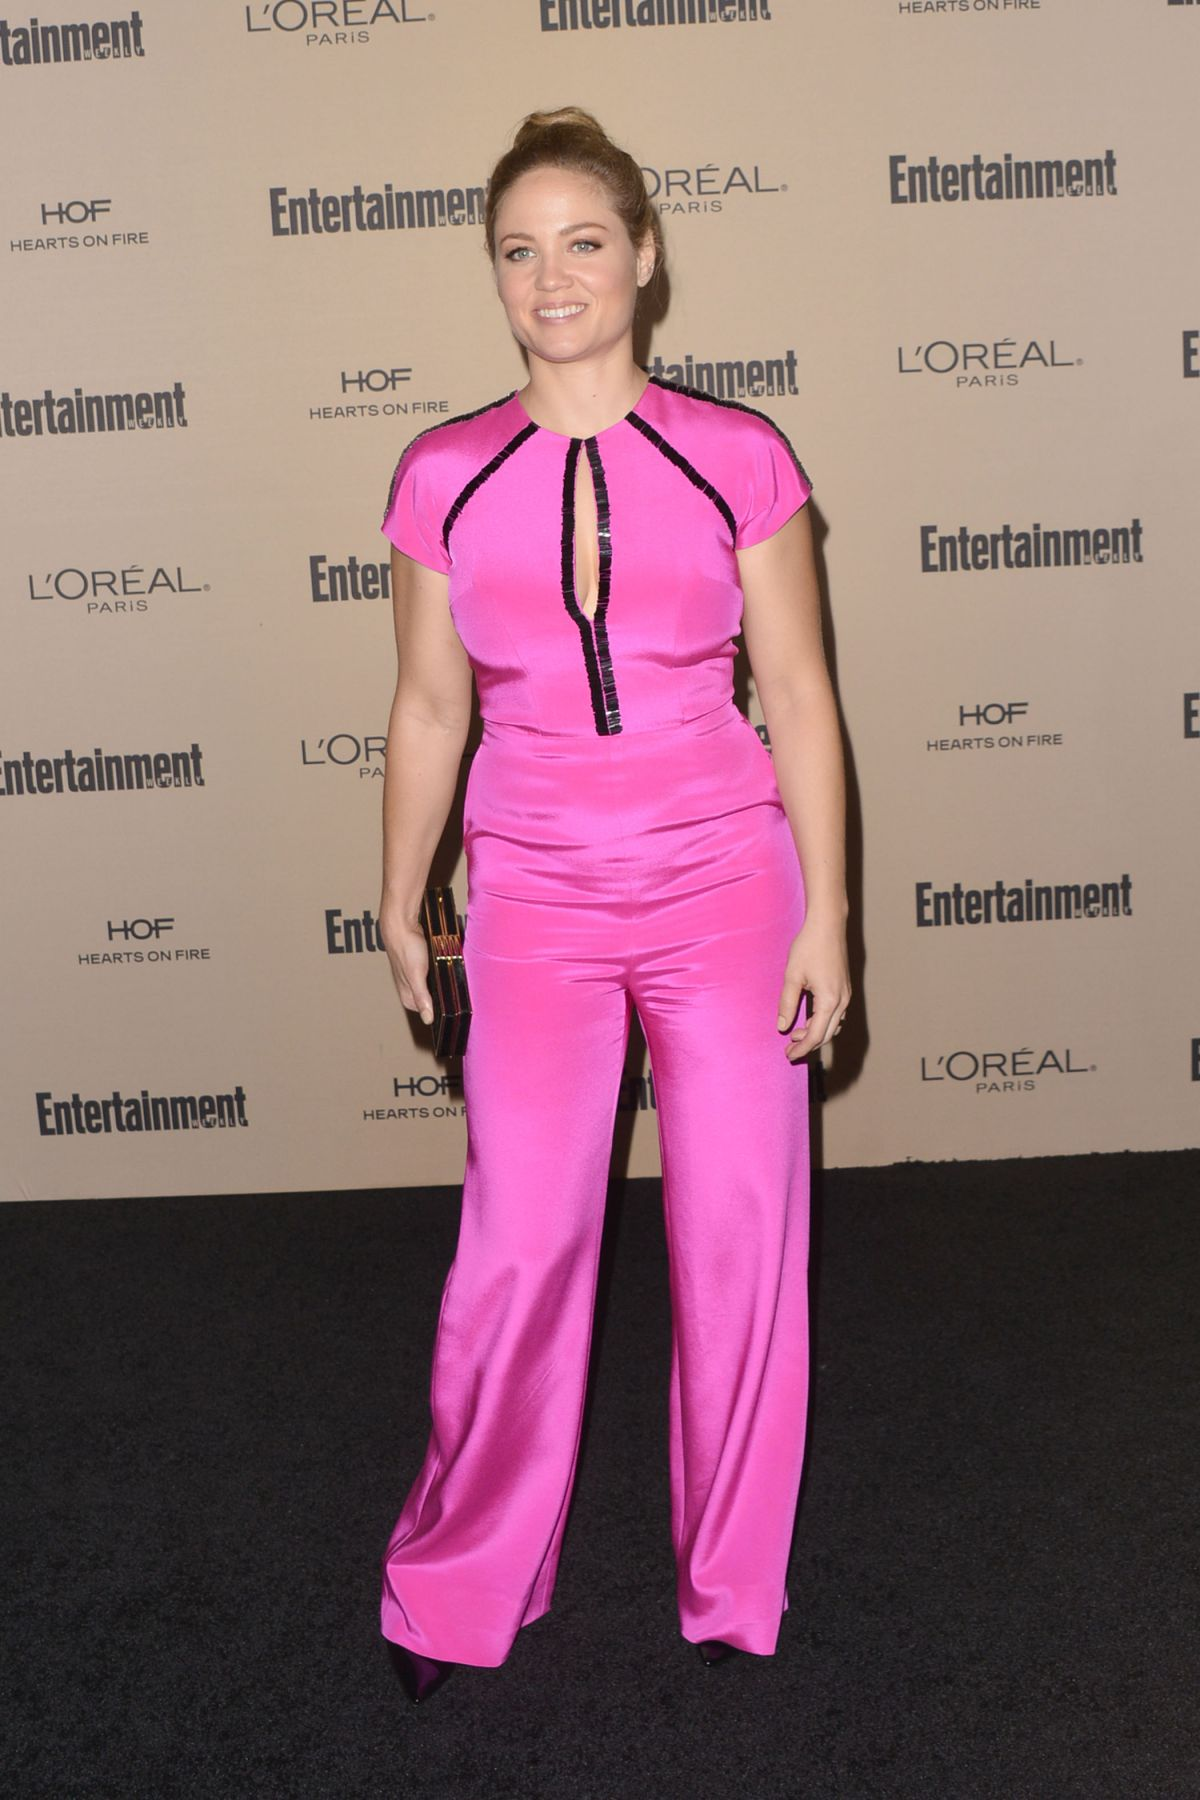 ERIKA CHRISTENSEN at 2015 Entertainment Weekly Pre-emmy Party in West Hollywood 09/18/2015